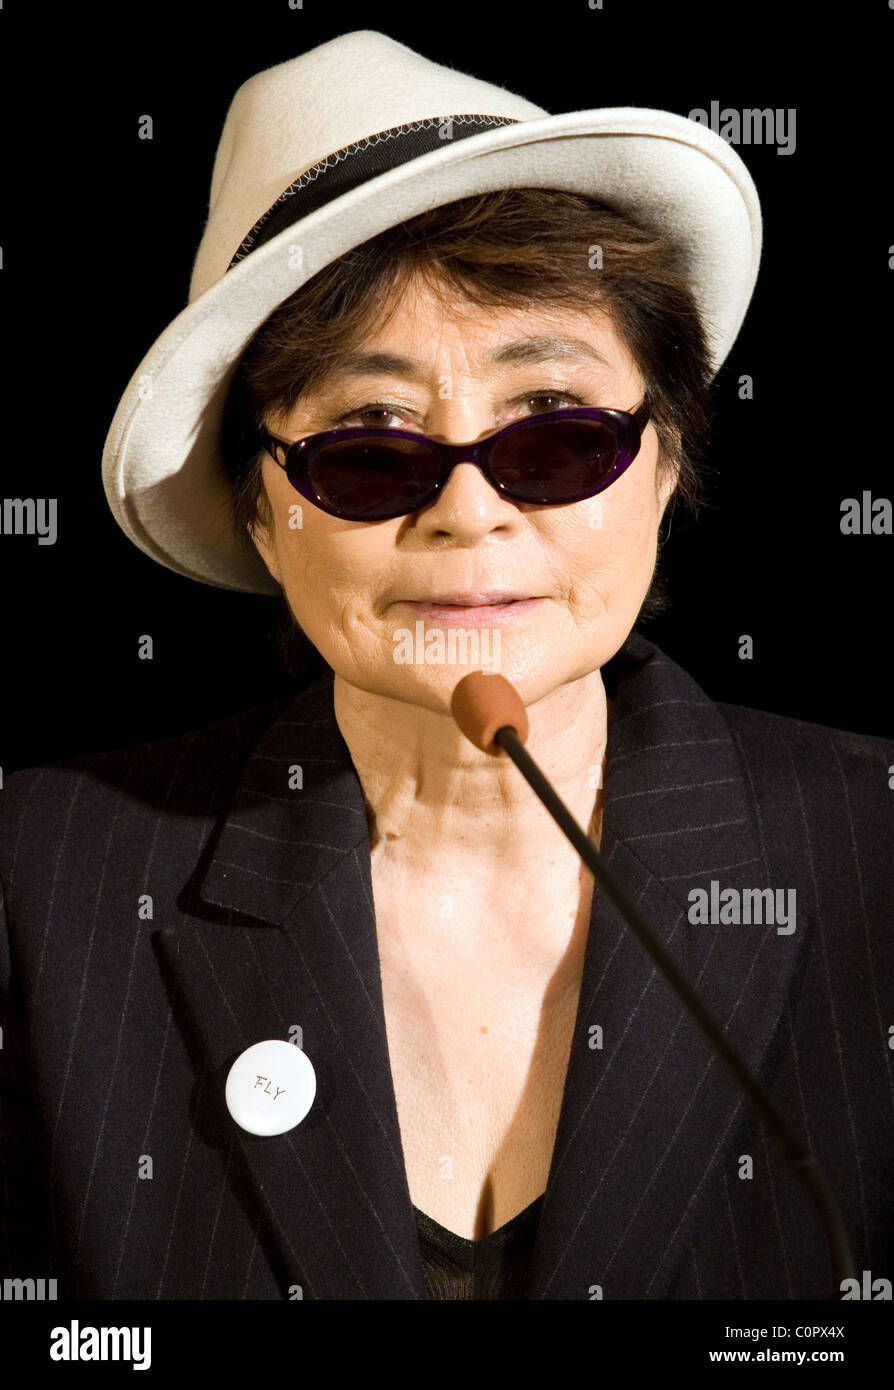 Yoko Ono Attends The Opening Of Her Exhibition Fly At The Centre Of Stock Photo Alamy